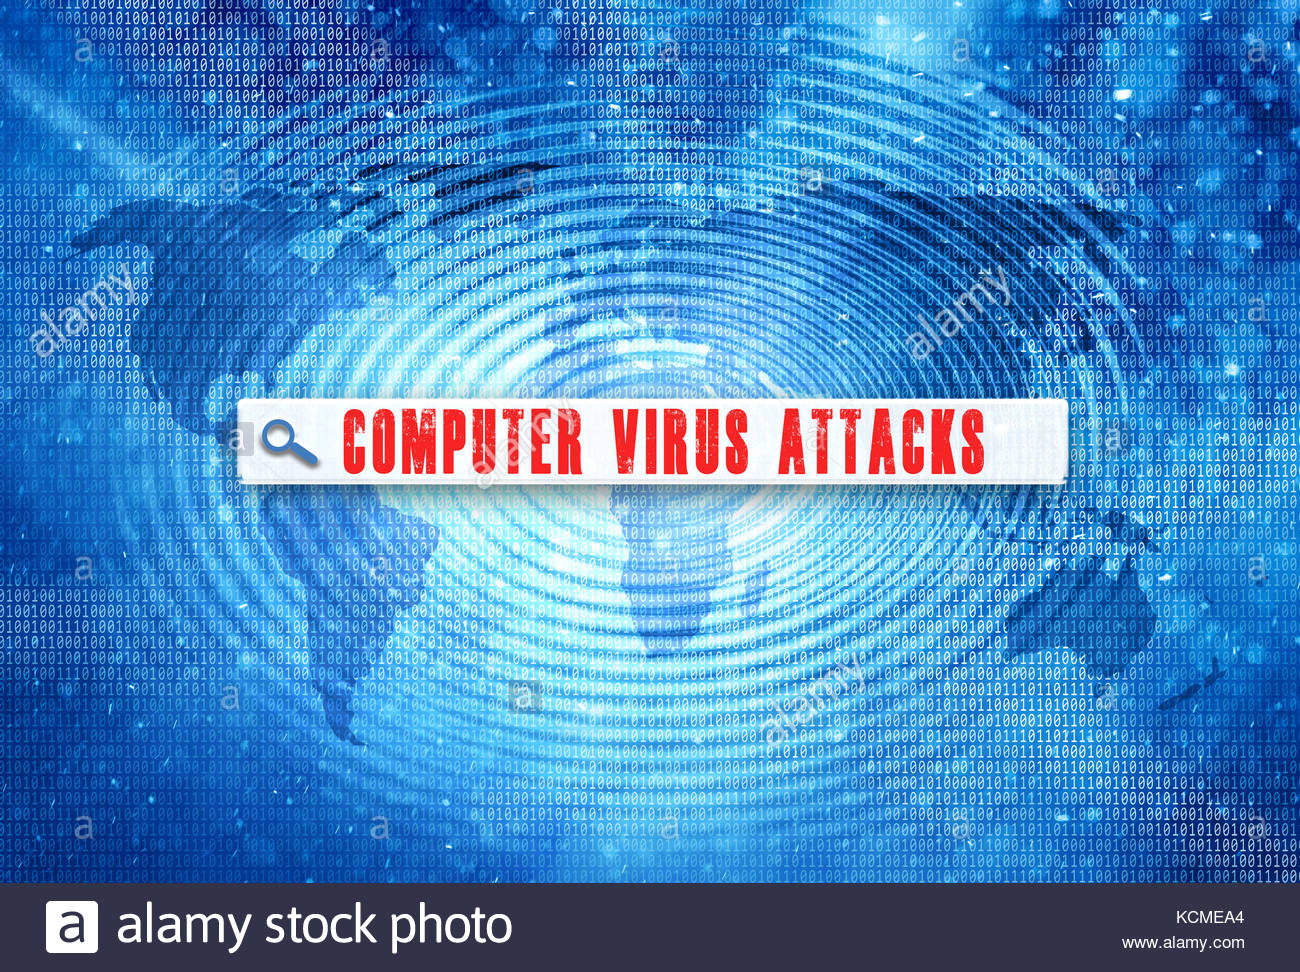 Abstract world map with binary numbers on spin wave effect with red color computer virus attacks words search toolbar - Stock Image